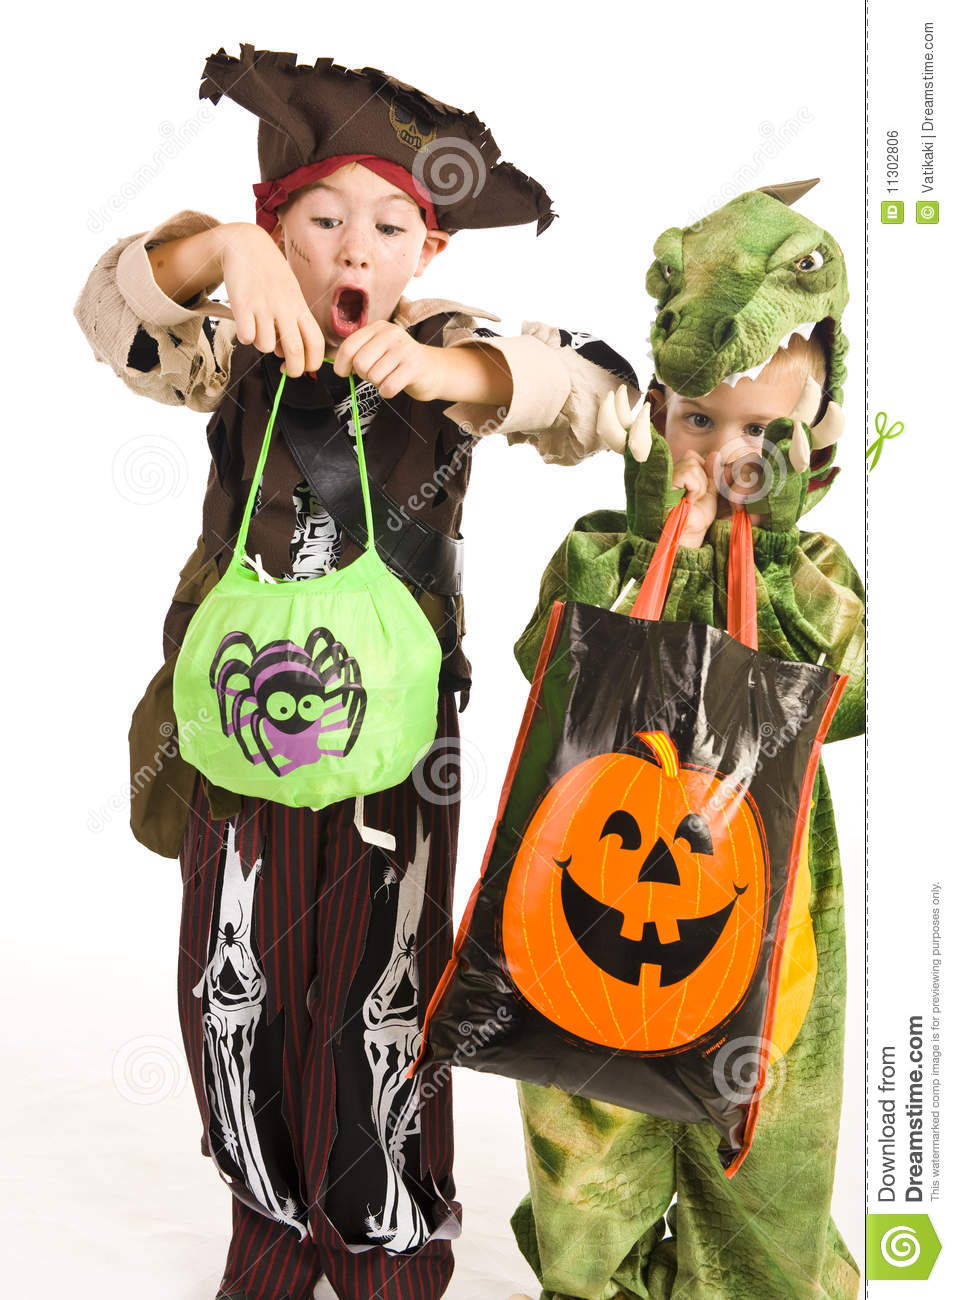 Download Adorable Kids Playing Trick Or Treat Stock Photo - Image of background, fancy: 11302806